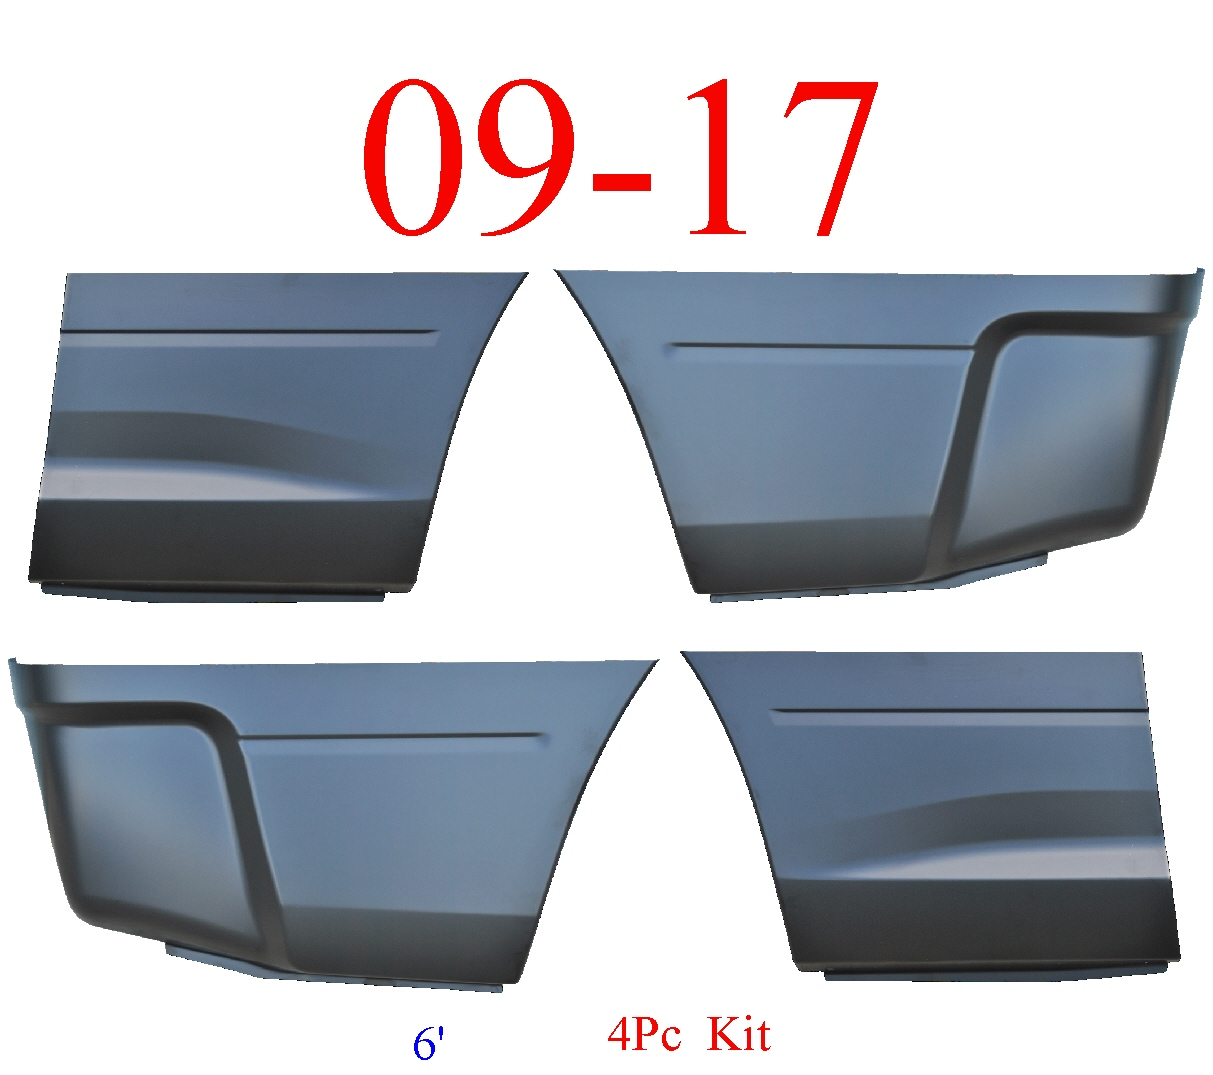 09-17 Ram 6' 4Pc Lower Bed Patch Kit, Front & Rear